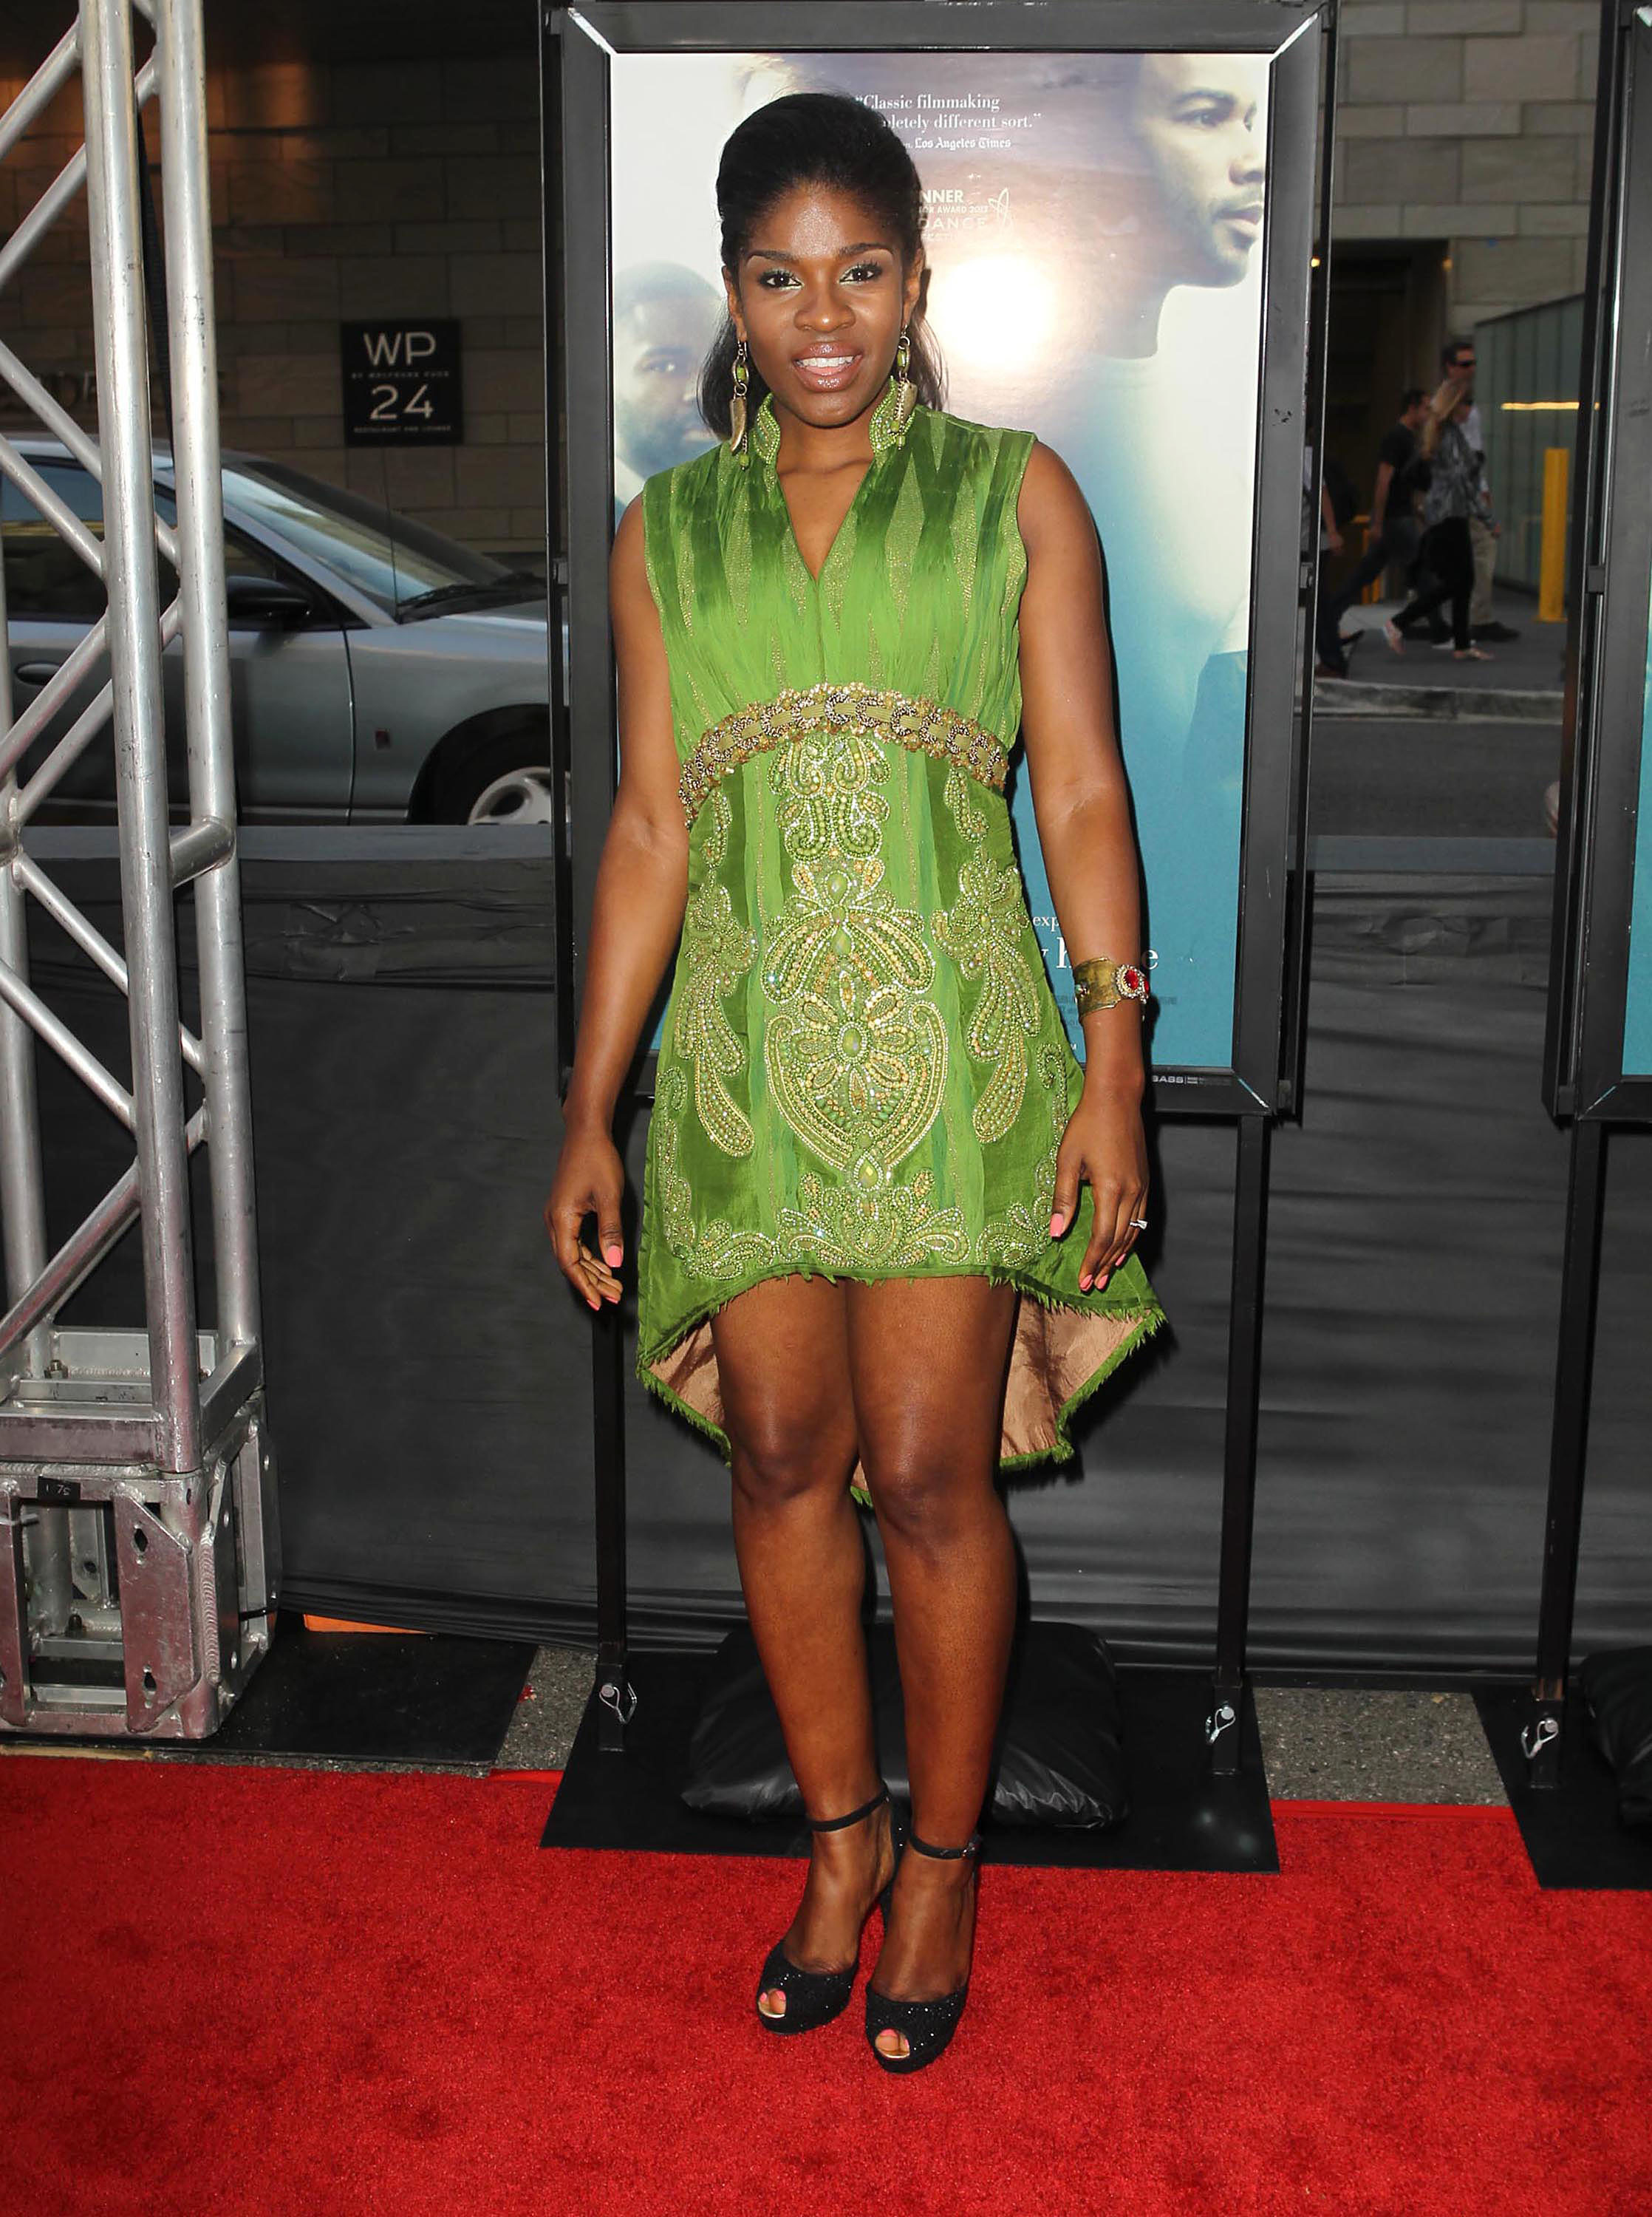 Edwina Findley Dickerson daughter